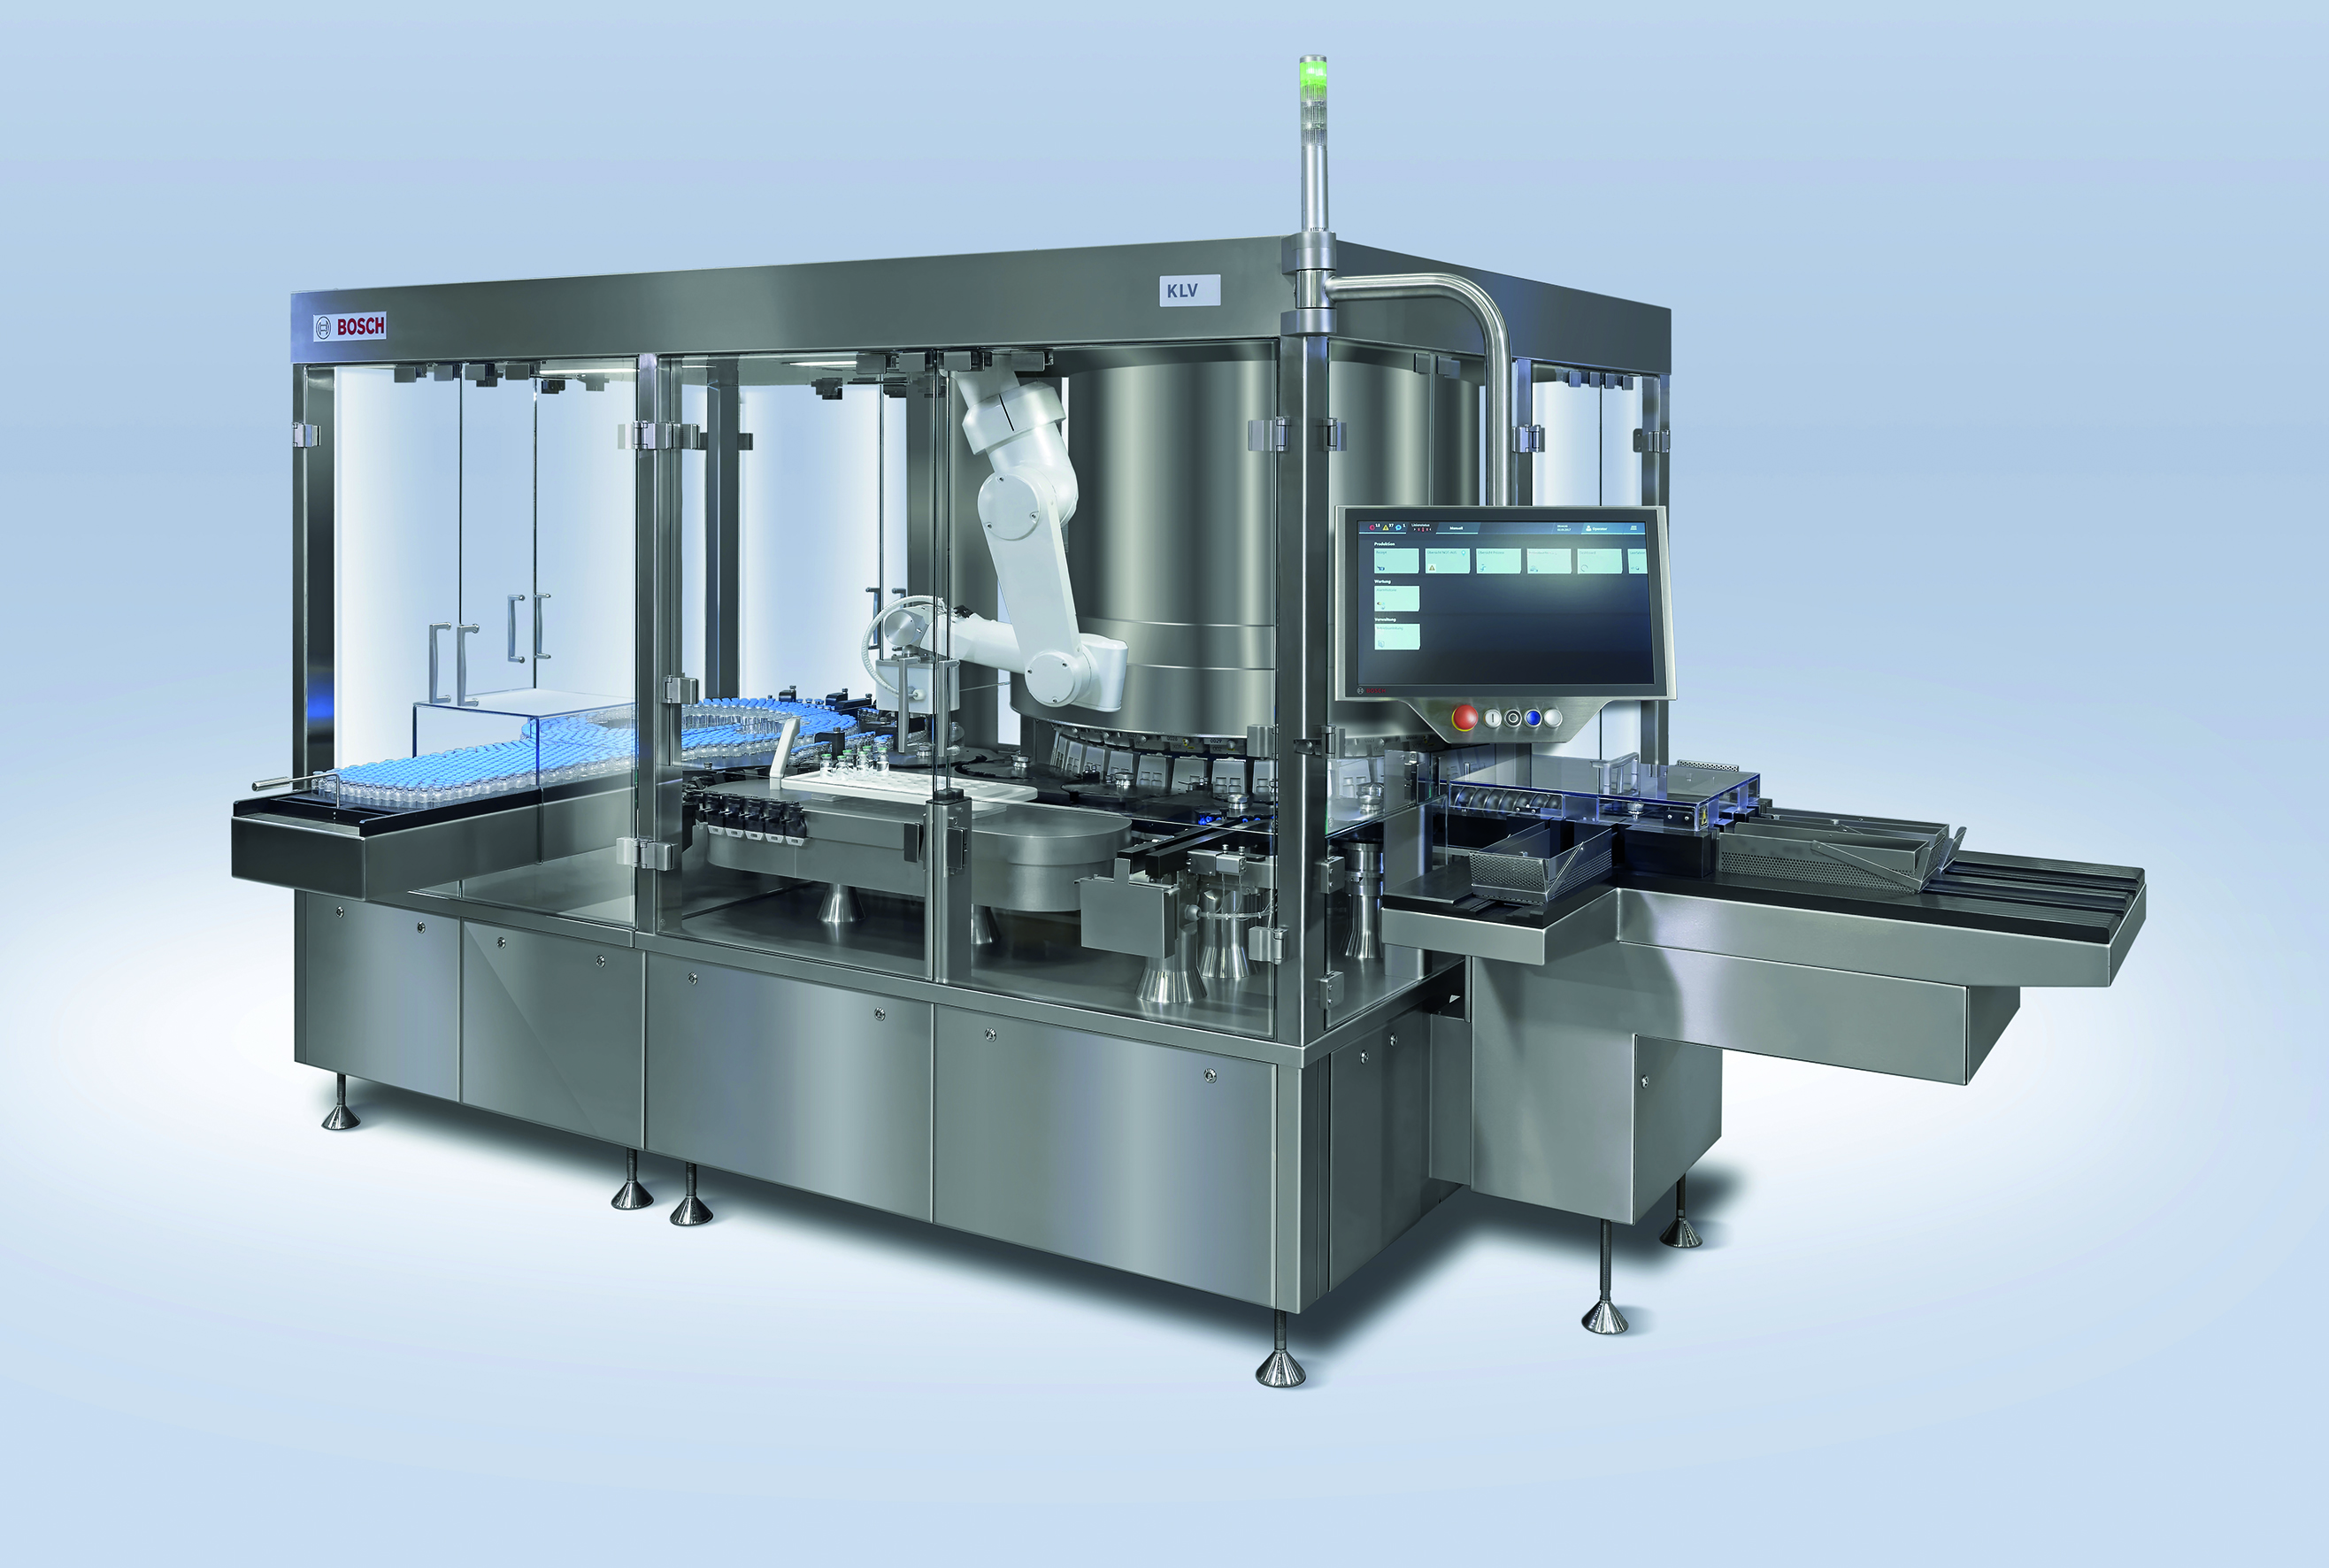 New KLV series for leak detection of rigid glass containers